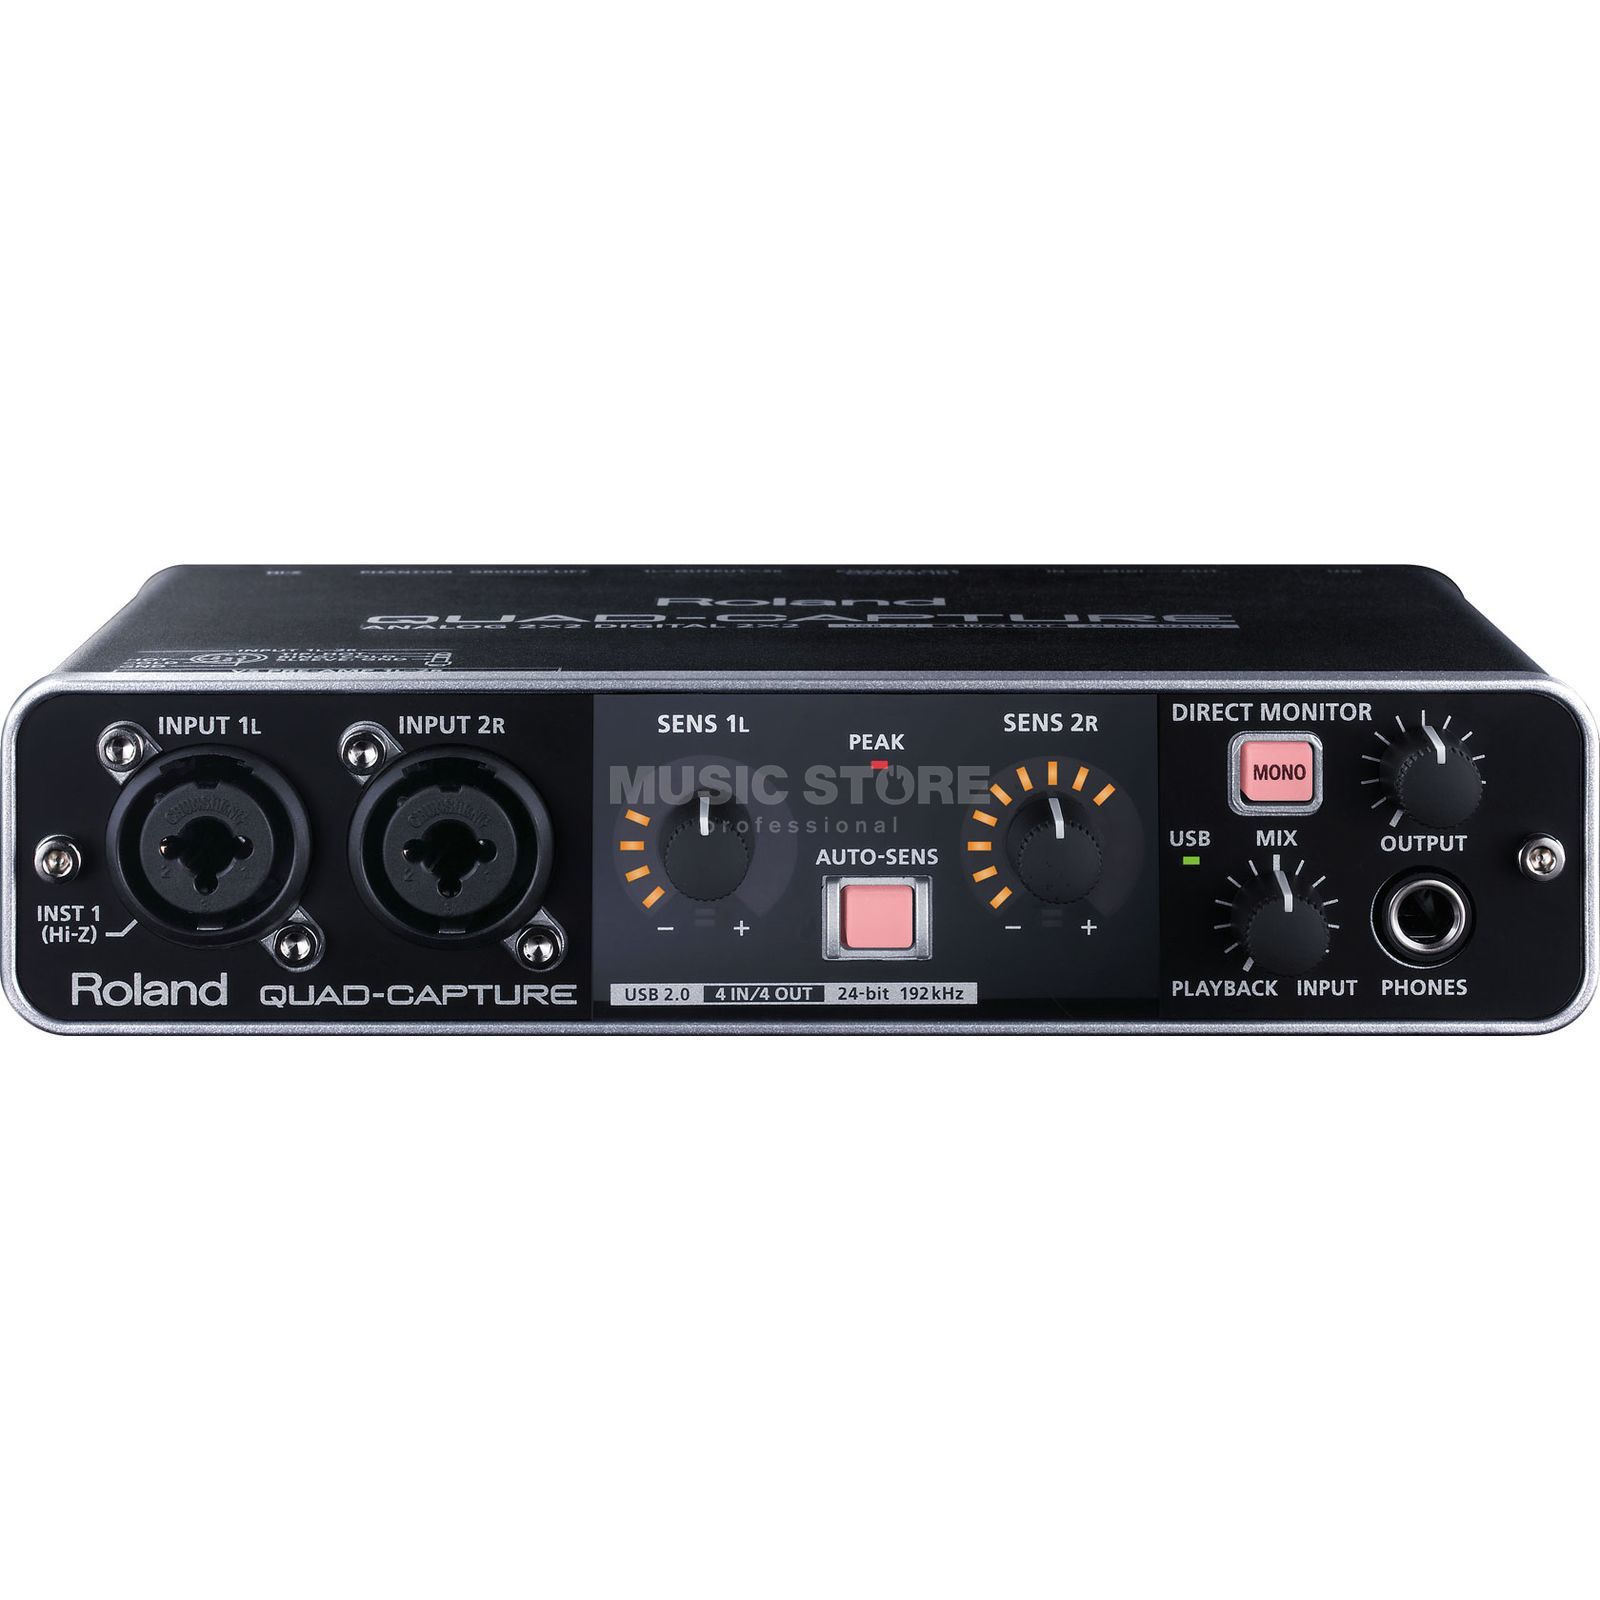 Roland QUAD-CAPTURE (UA-55) USB 2.0 Audio Interface Produktbild